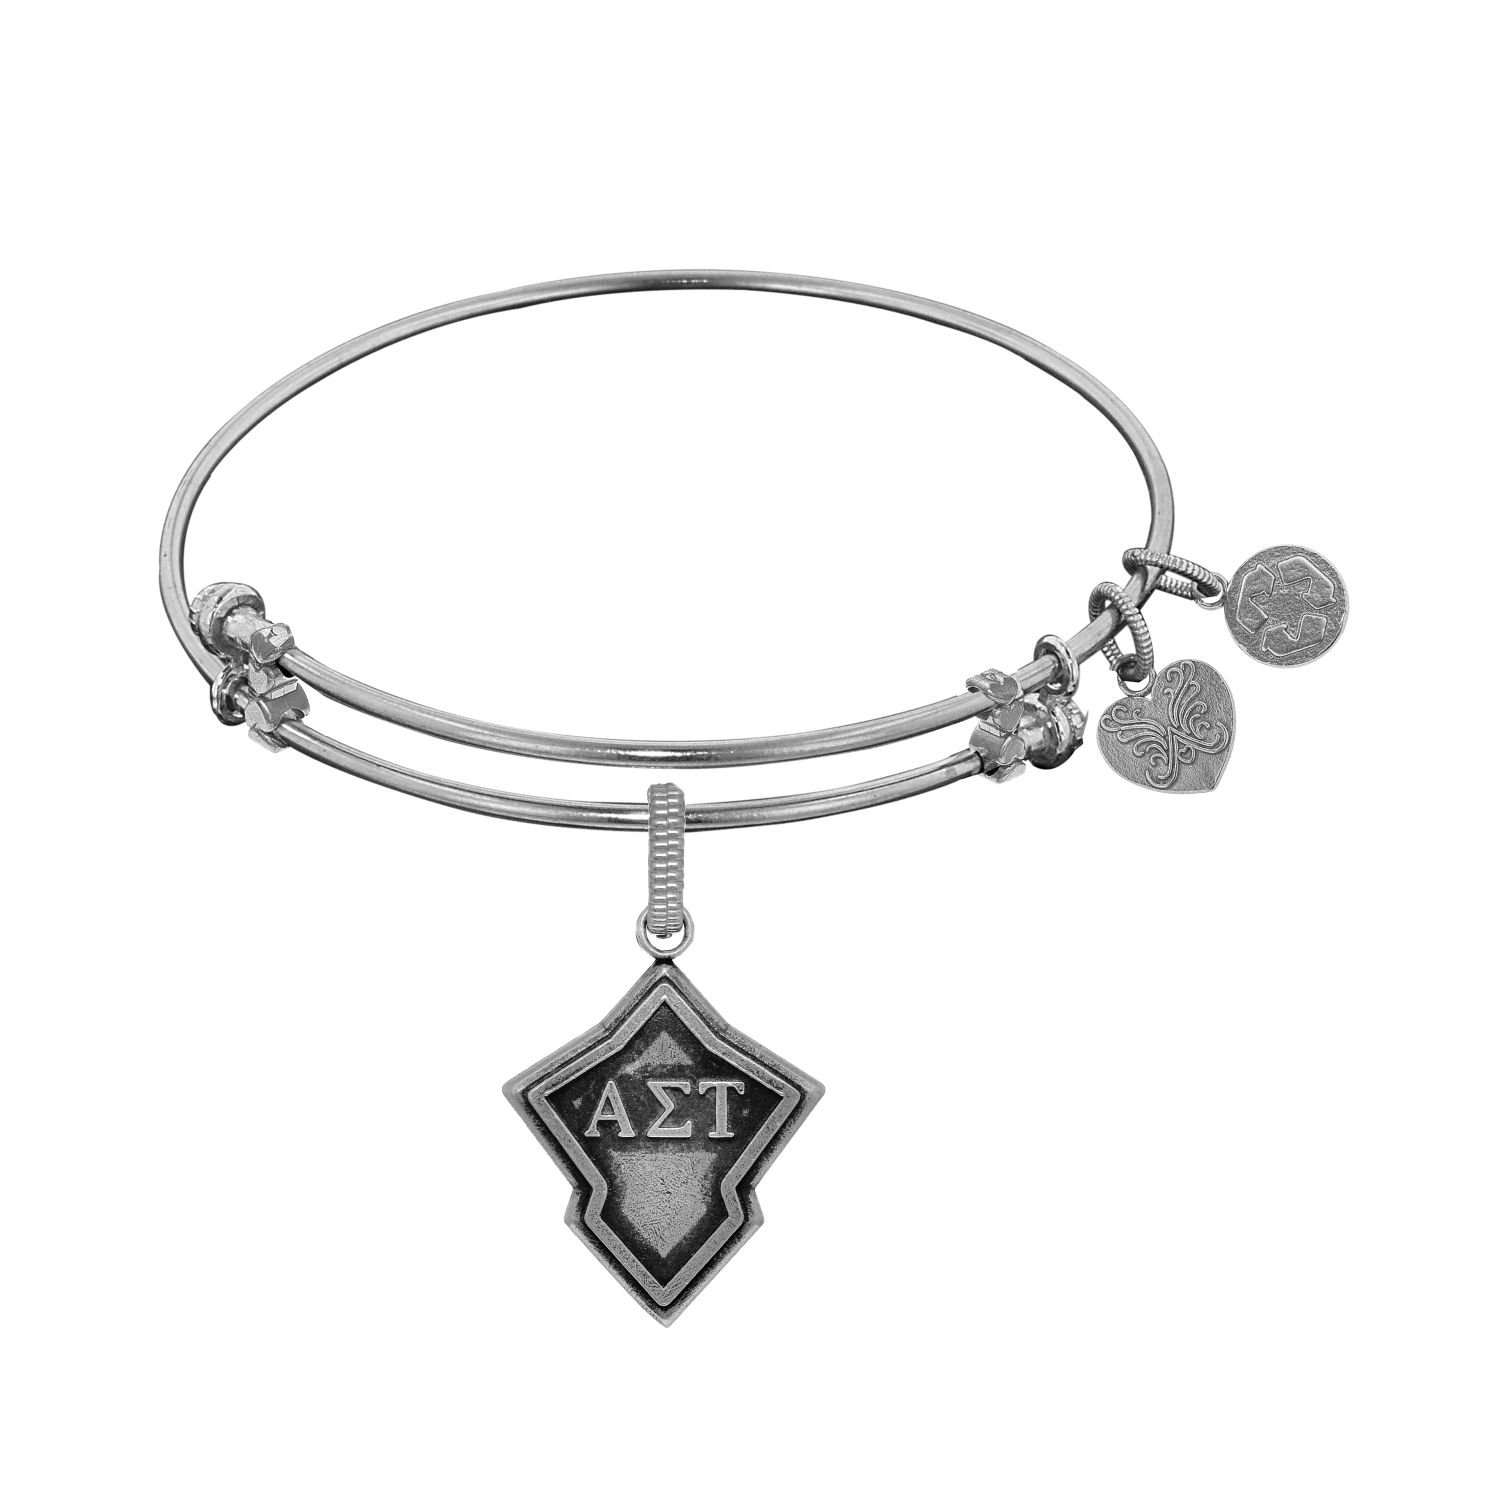 Angelica jewelry Collection Alpha Sigma Tau bracelet with white finish